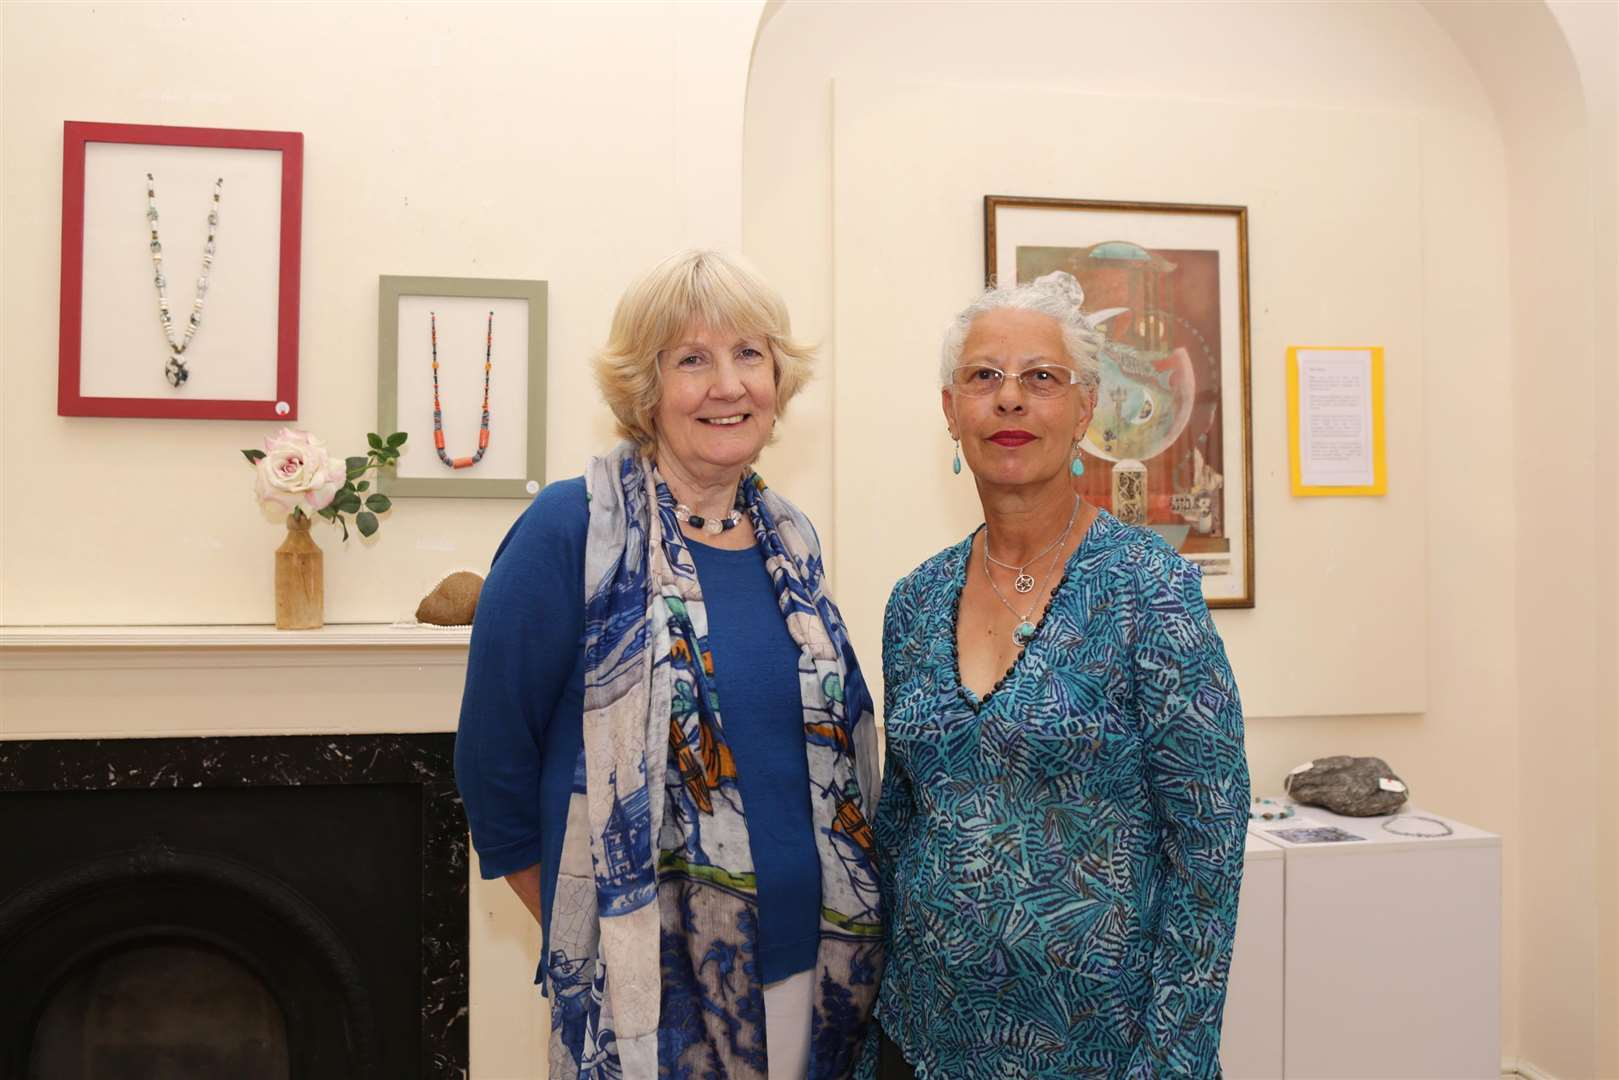 Jewellery designer Jenny Dalton with artist Nadia Ming. Their work is on show in the Spotlight Gallery at Newark Town Hall, along with pieces by Deb Gilham. 030718TV2-1